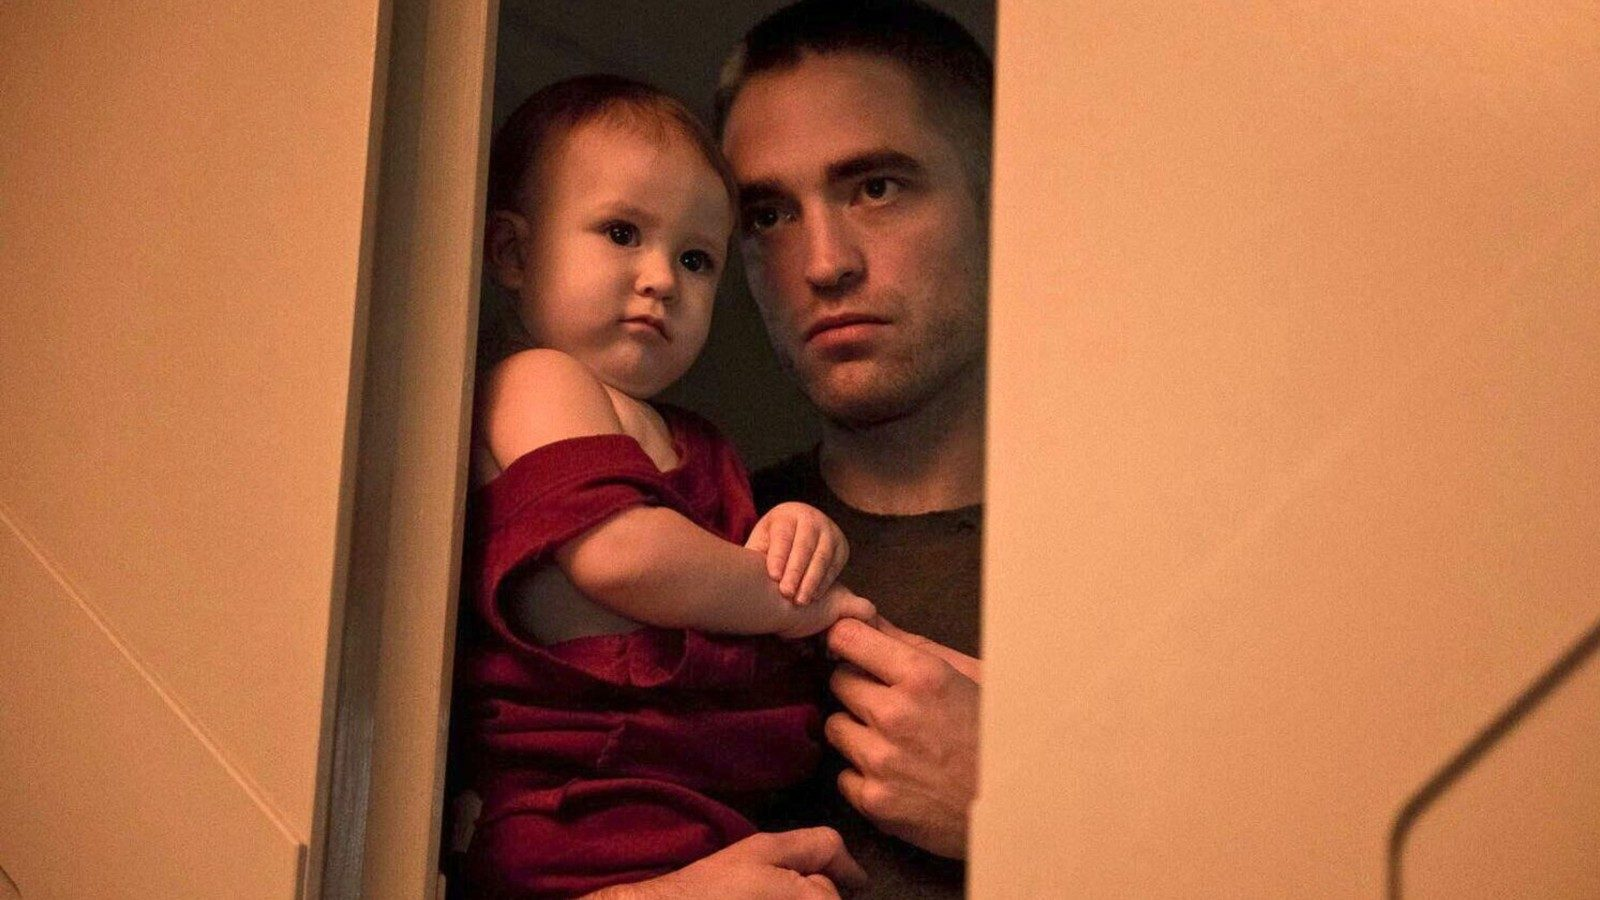 Monte (Robert Pattinson) tends his infant daughter Willow (Scarlett Lindsey) alone on a spaceship in High Life (2018)